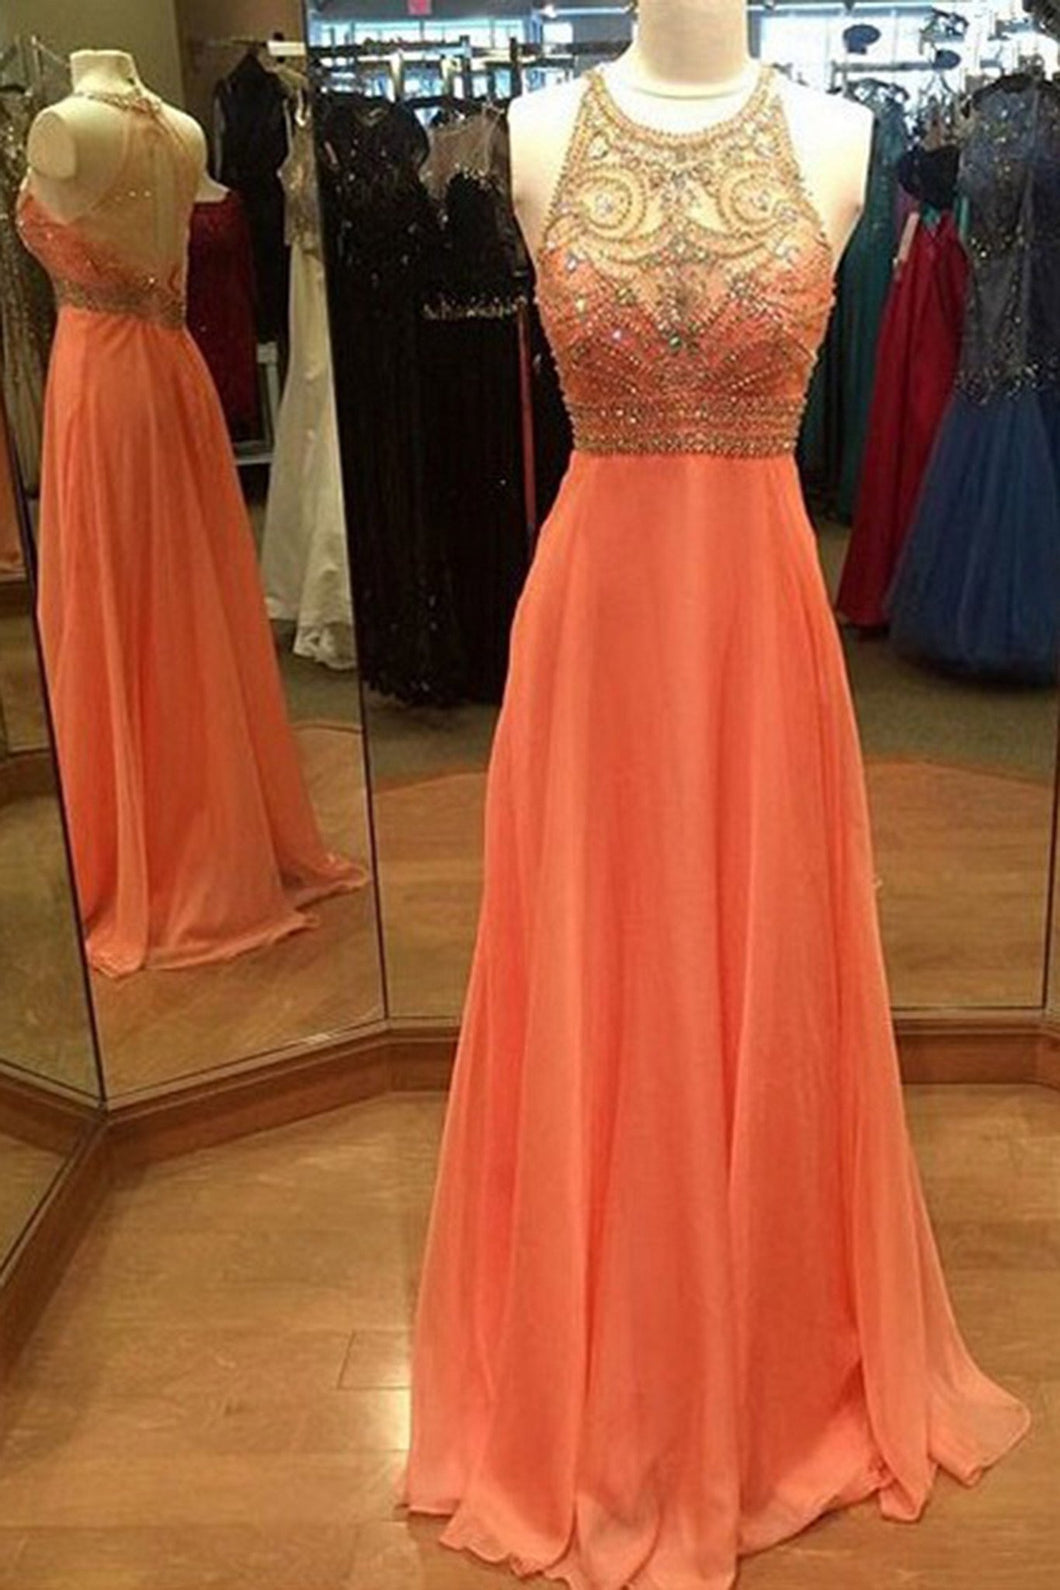 2018 evening gowns - Orange chiffon see-through beading rhinestone A-line long evening dresses